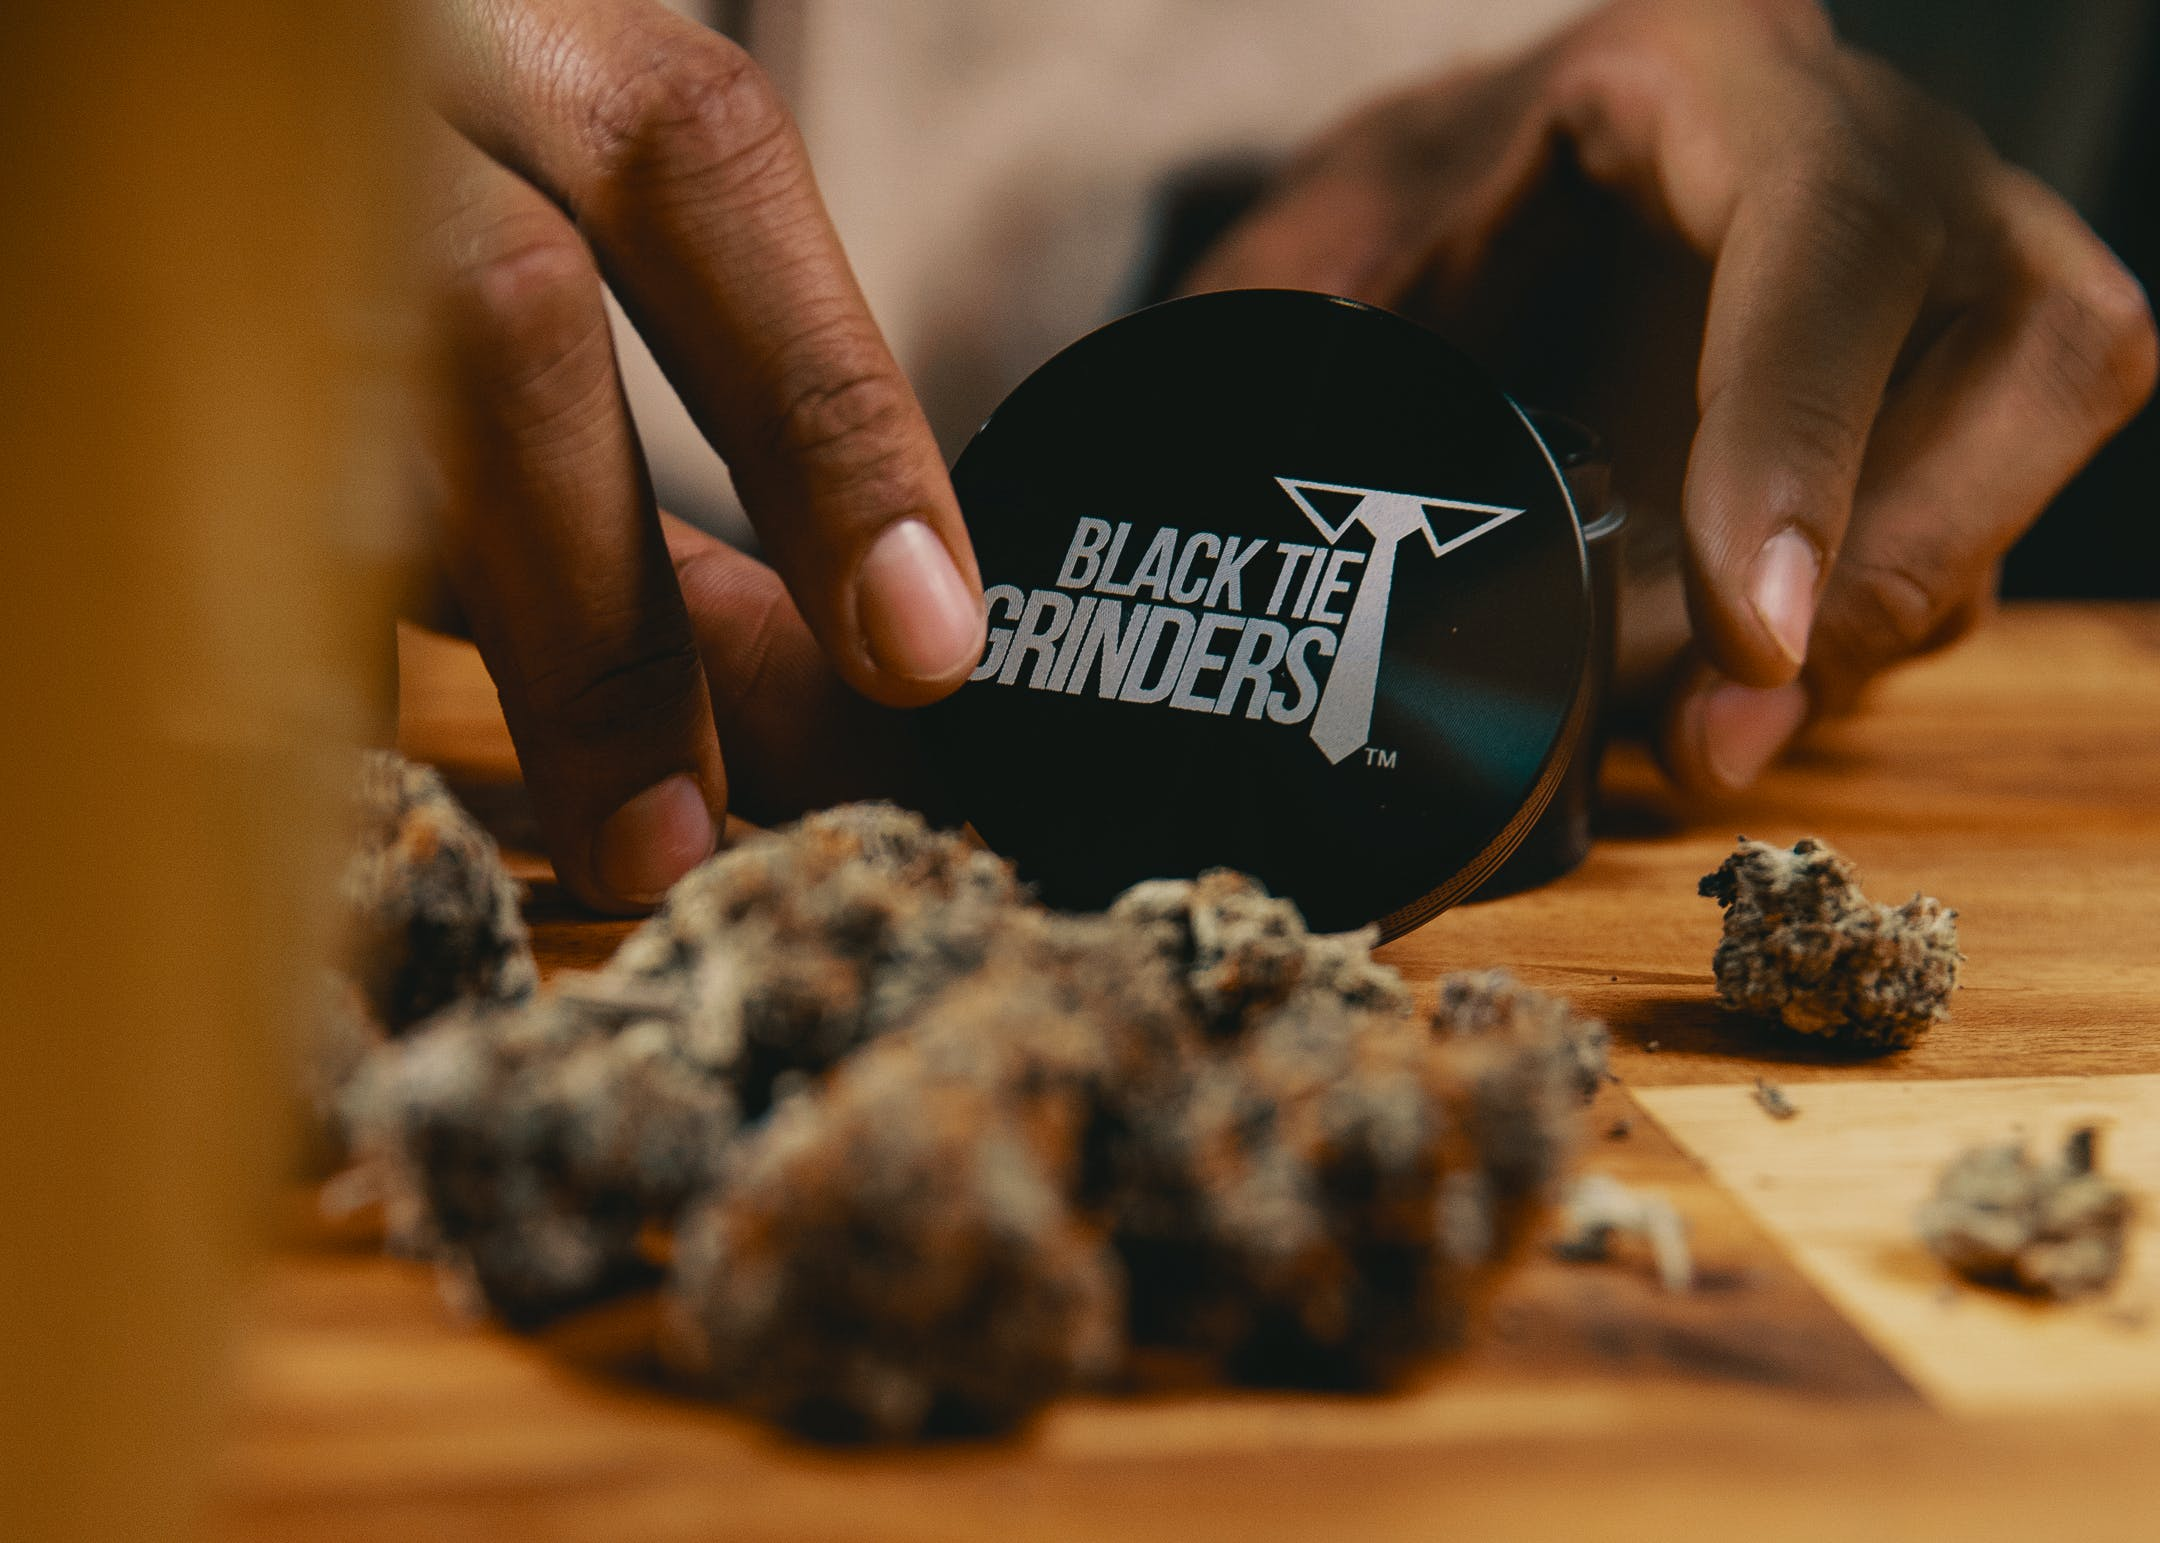 How To Get The Most Out Of Your Stash With The Best Weed Grinders 4 2 How to Get the Most Out Of Your Stash with the Best Weed Grinders